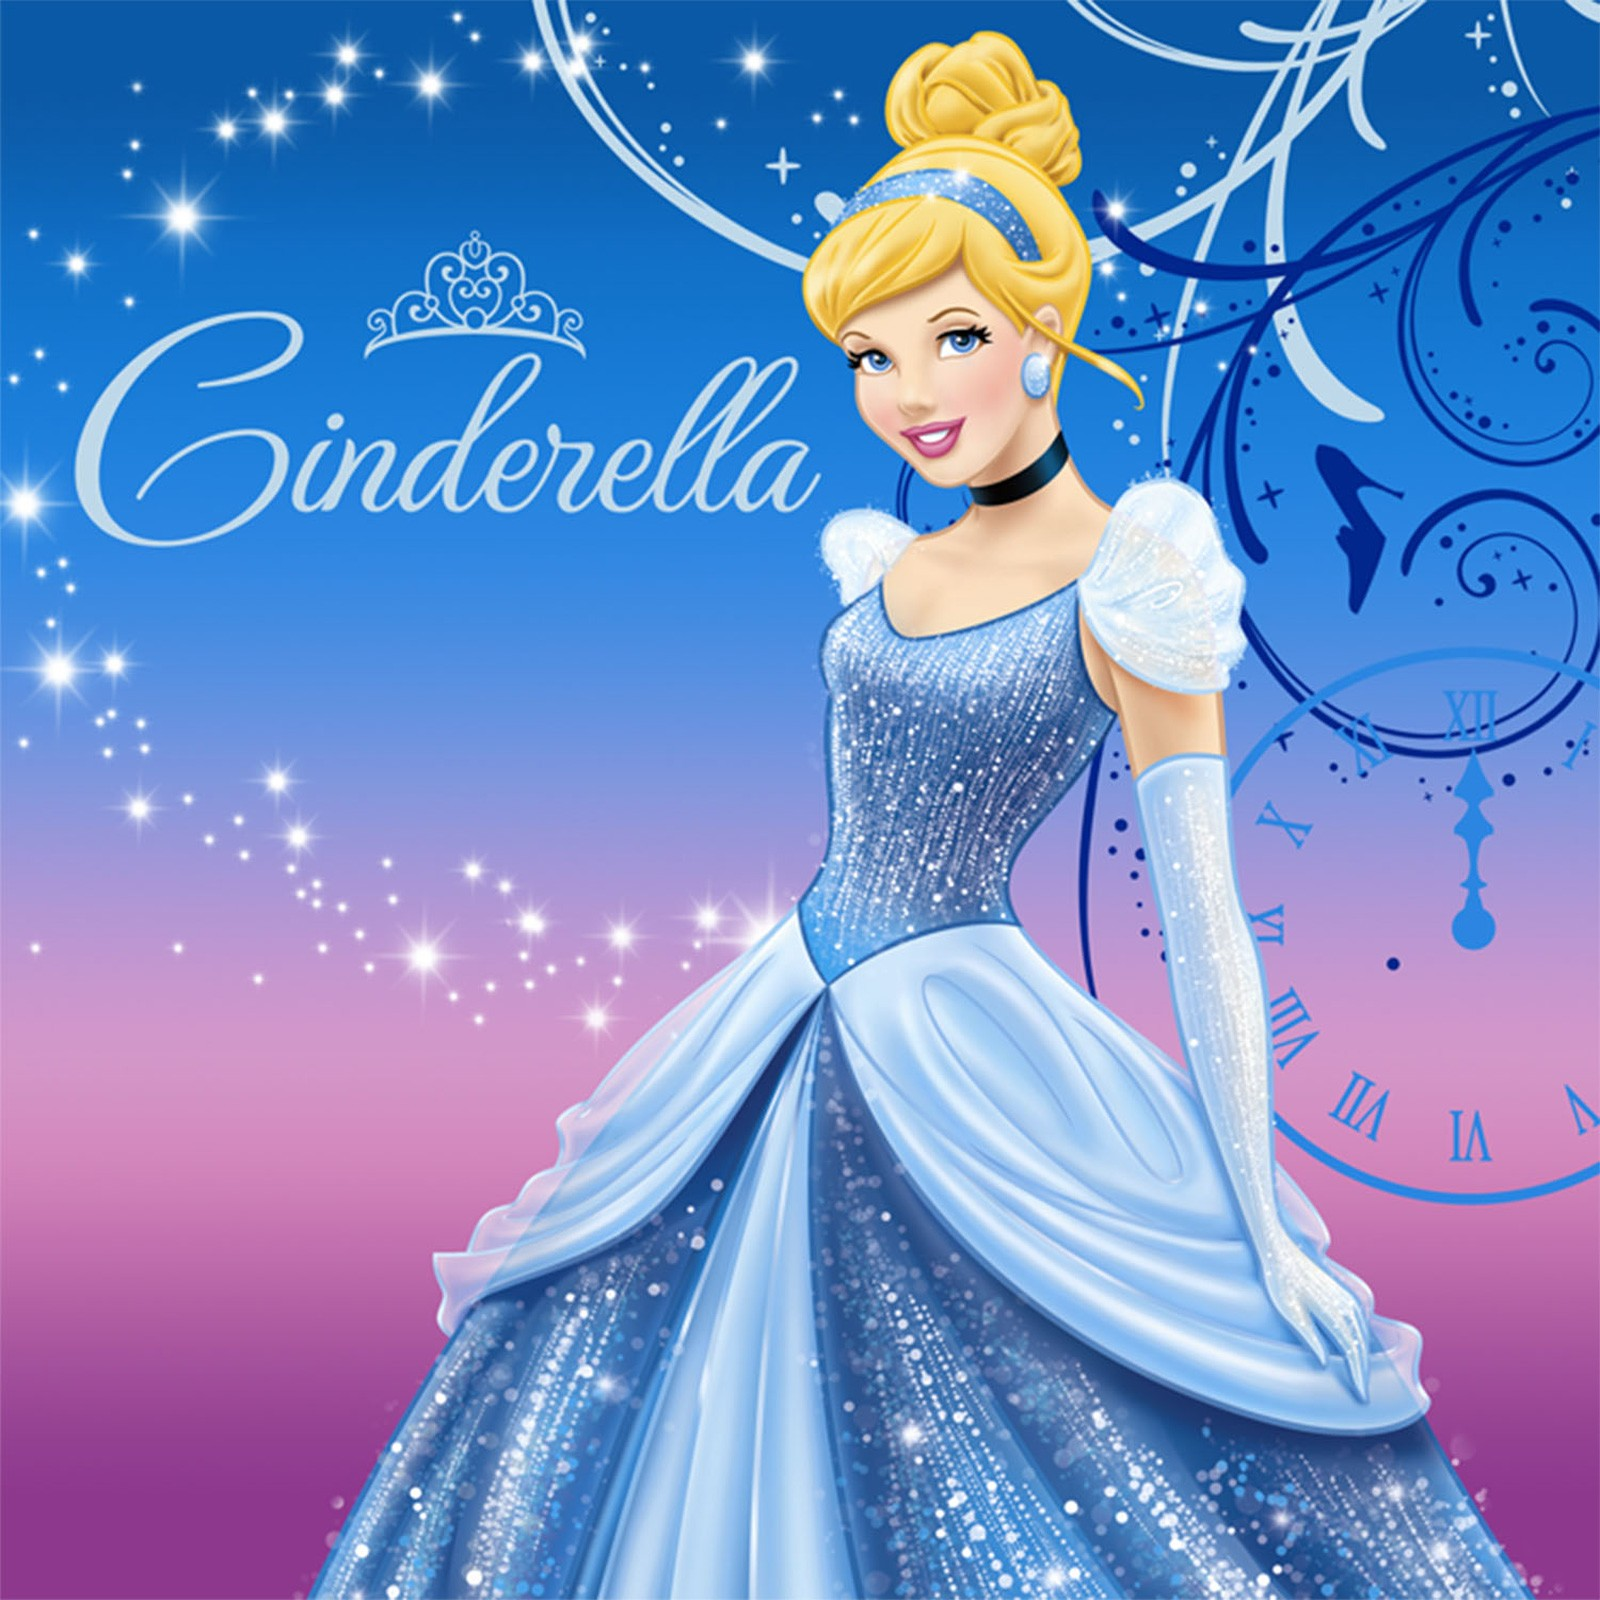 Image result for images of cinderella